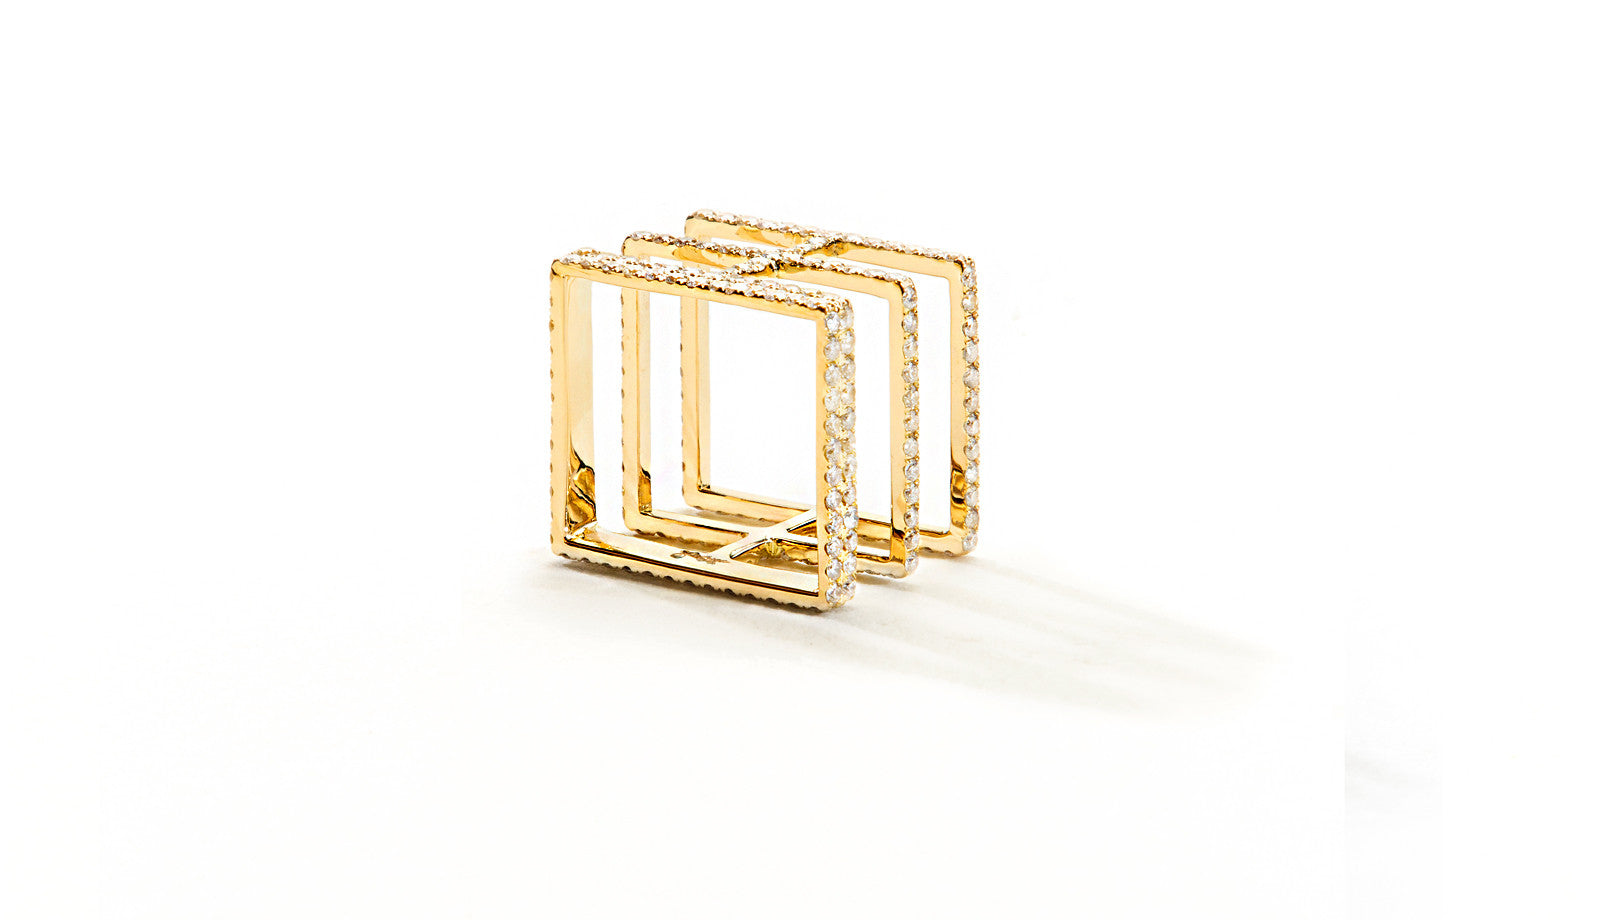 Sophie Birgitt Jewellery BETWEEN THE LINES 18K Yellow Gold